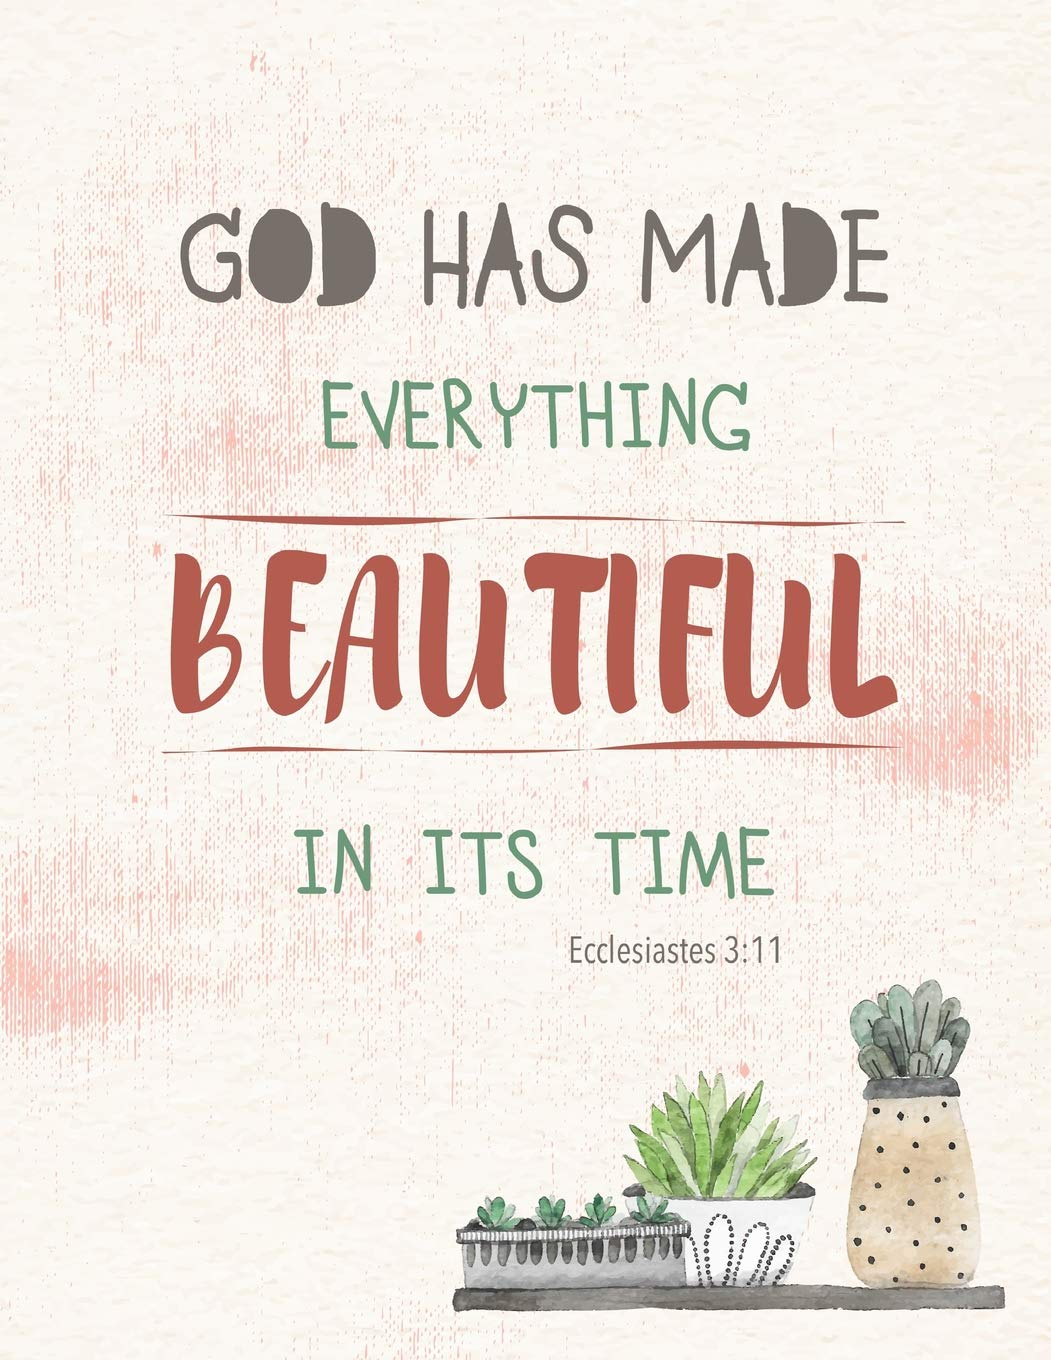 He Makes Everything Beautiful In Its Time